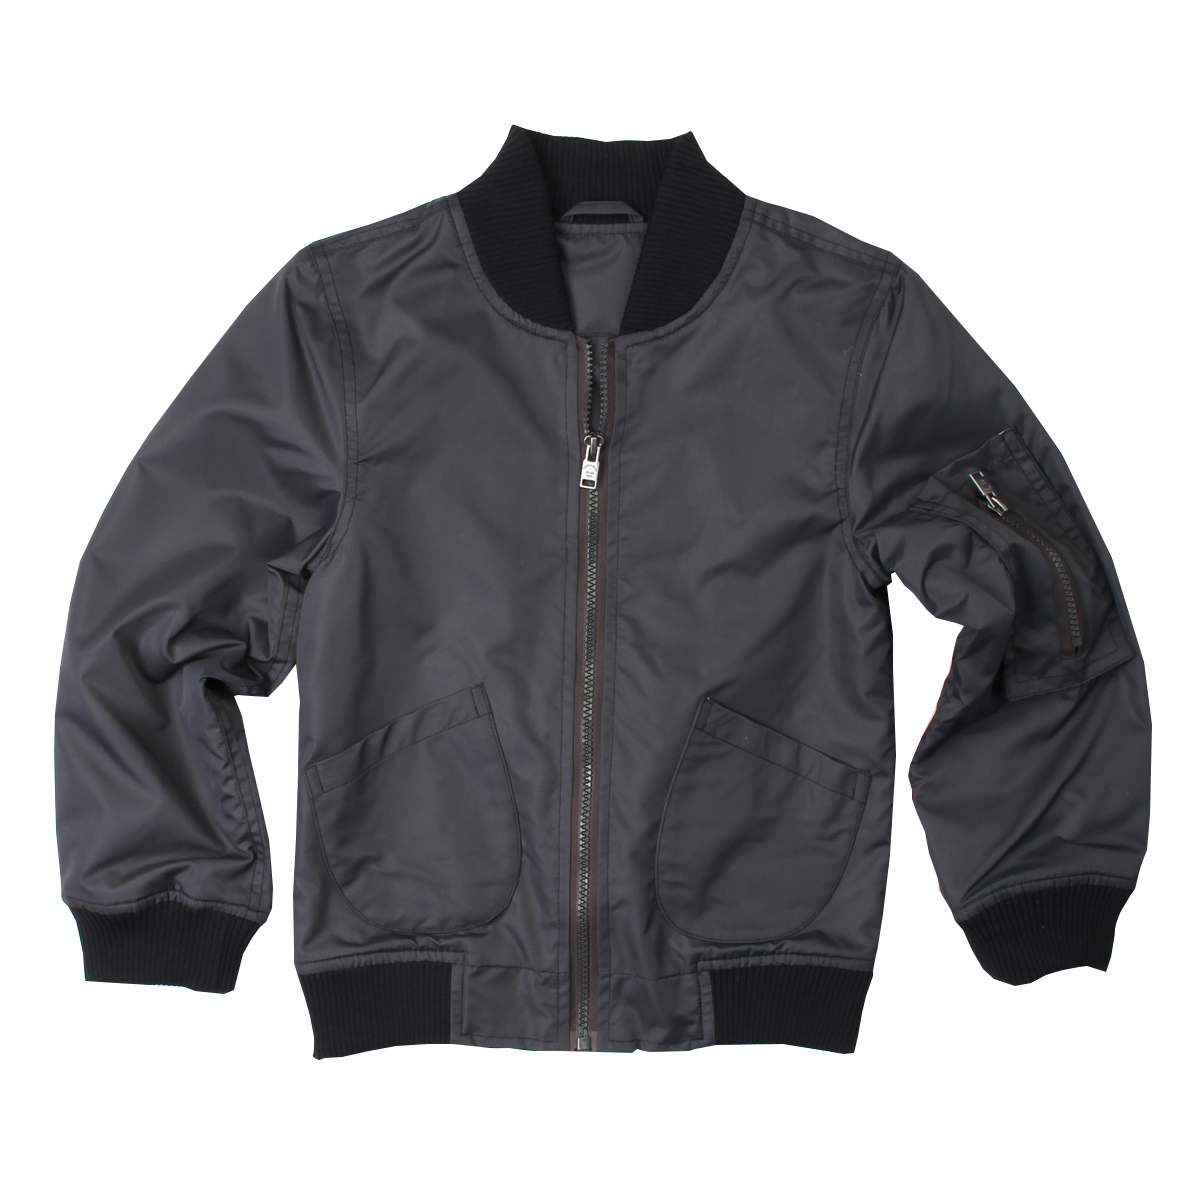 Boys' Nylon Jacket by Wes and Willy (Size: 4)